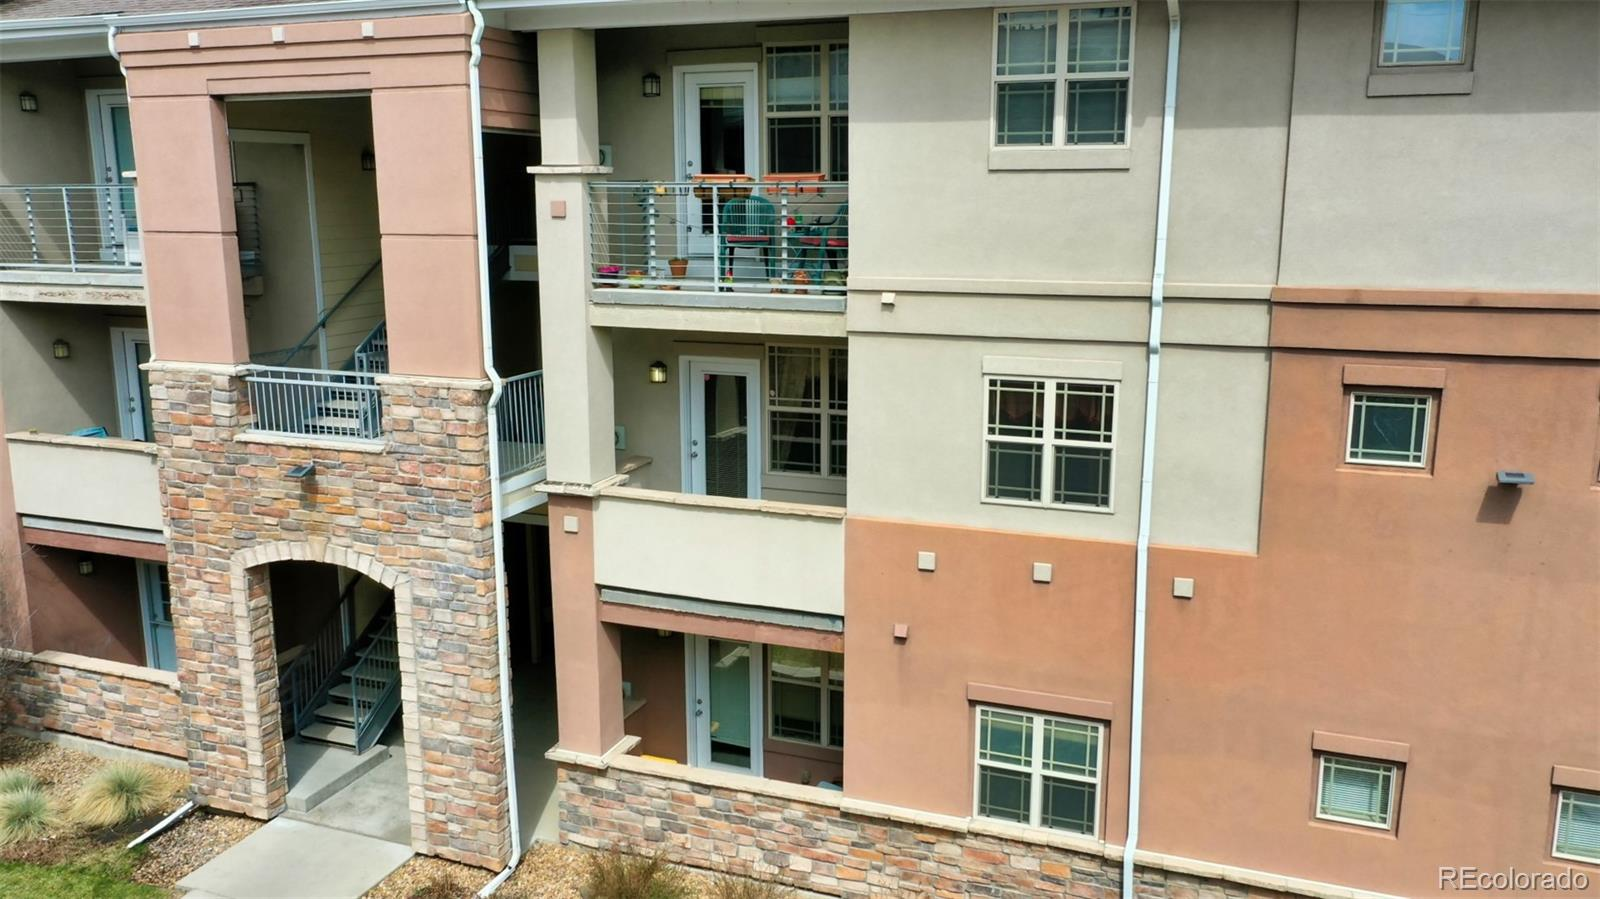 MLS# 3562922 - 35 - 8123 W 51st Place #202, Arvada, CO 80002